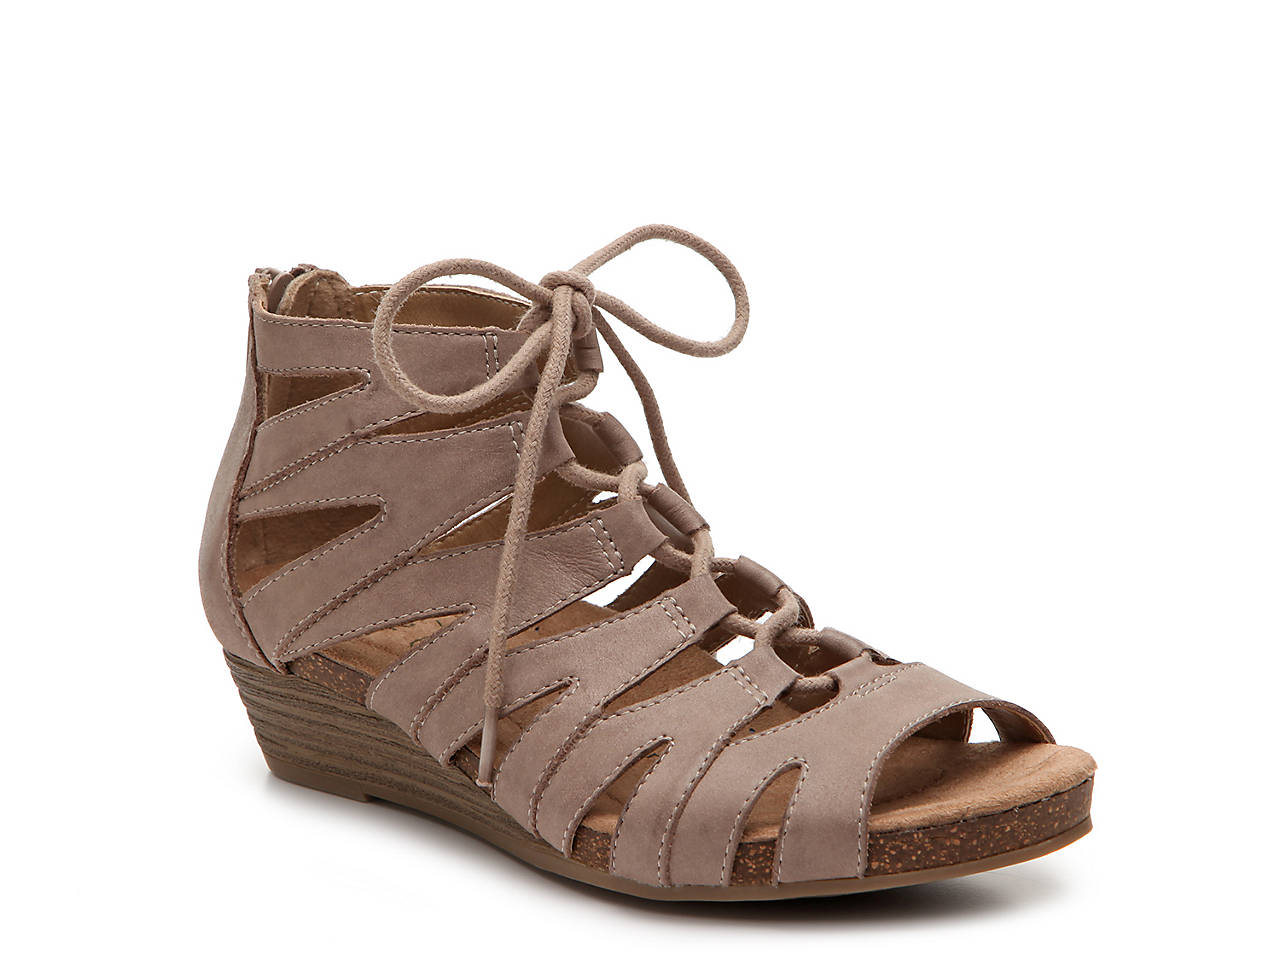 Earth Origins Leather Lace-up Wedges - Harley sale buy cheap sale 100% guaranteed buy cheap good selling cheap clearance free shipping cheap QnLUdWN